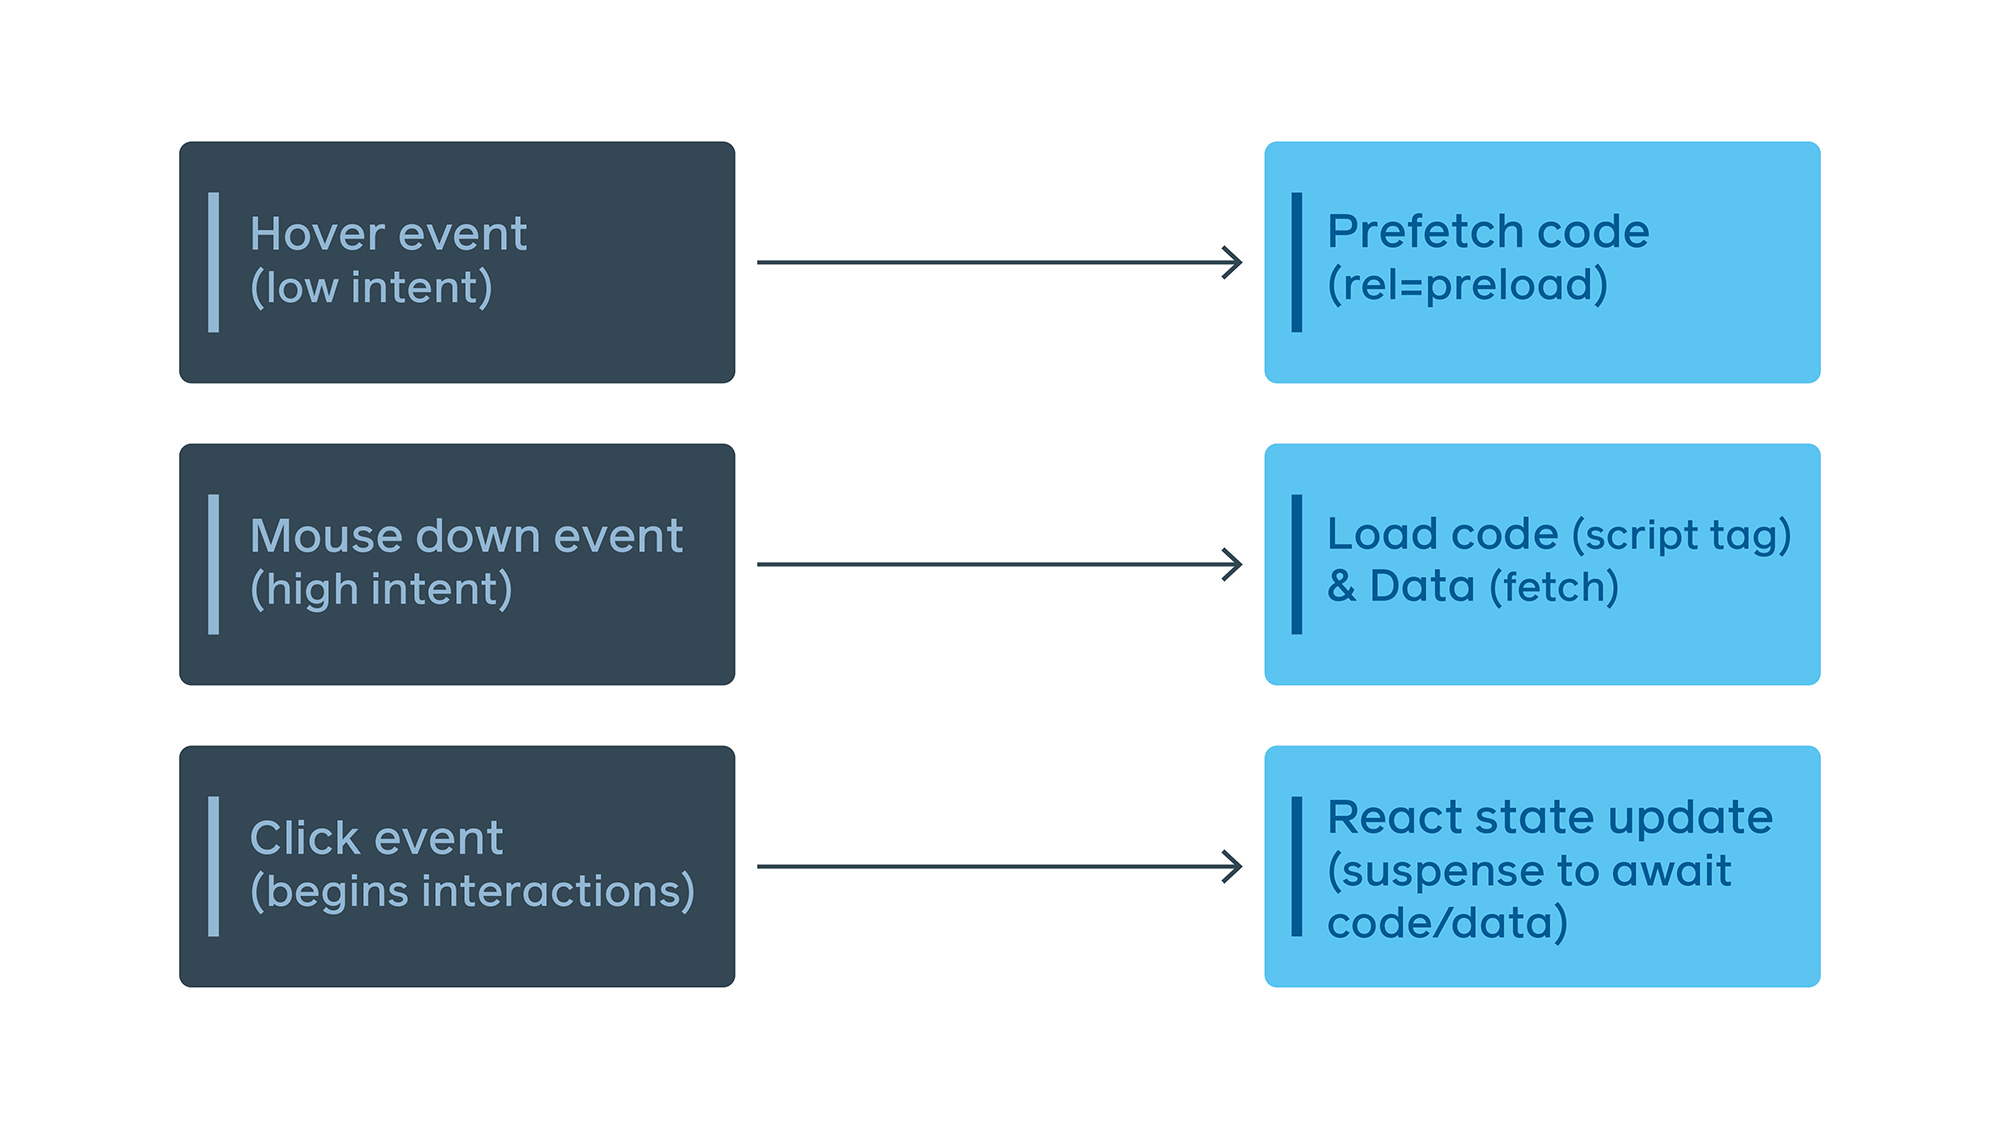 We kick off fetches early, preloading on hover or focus, and fetching on mousedown. This example is specific to desktop, but other heuristics can be used for touch devices.